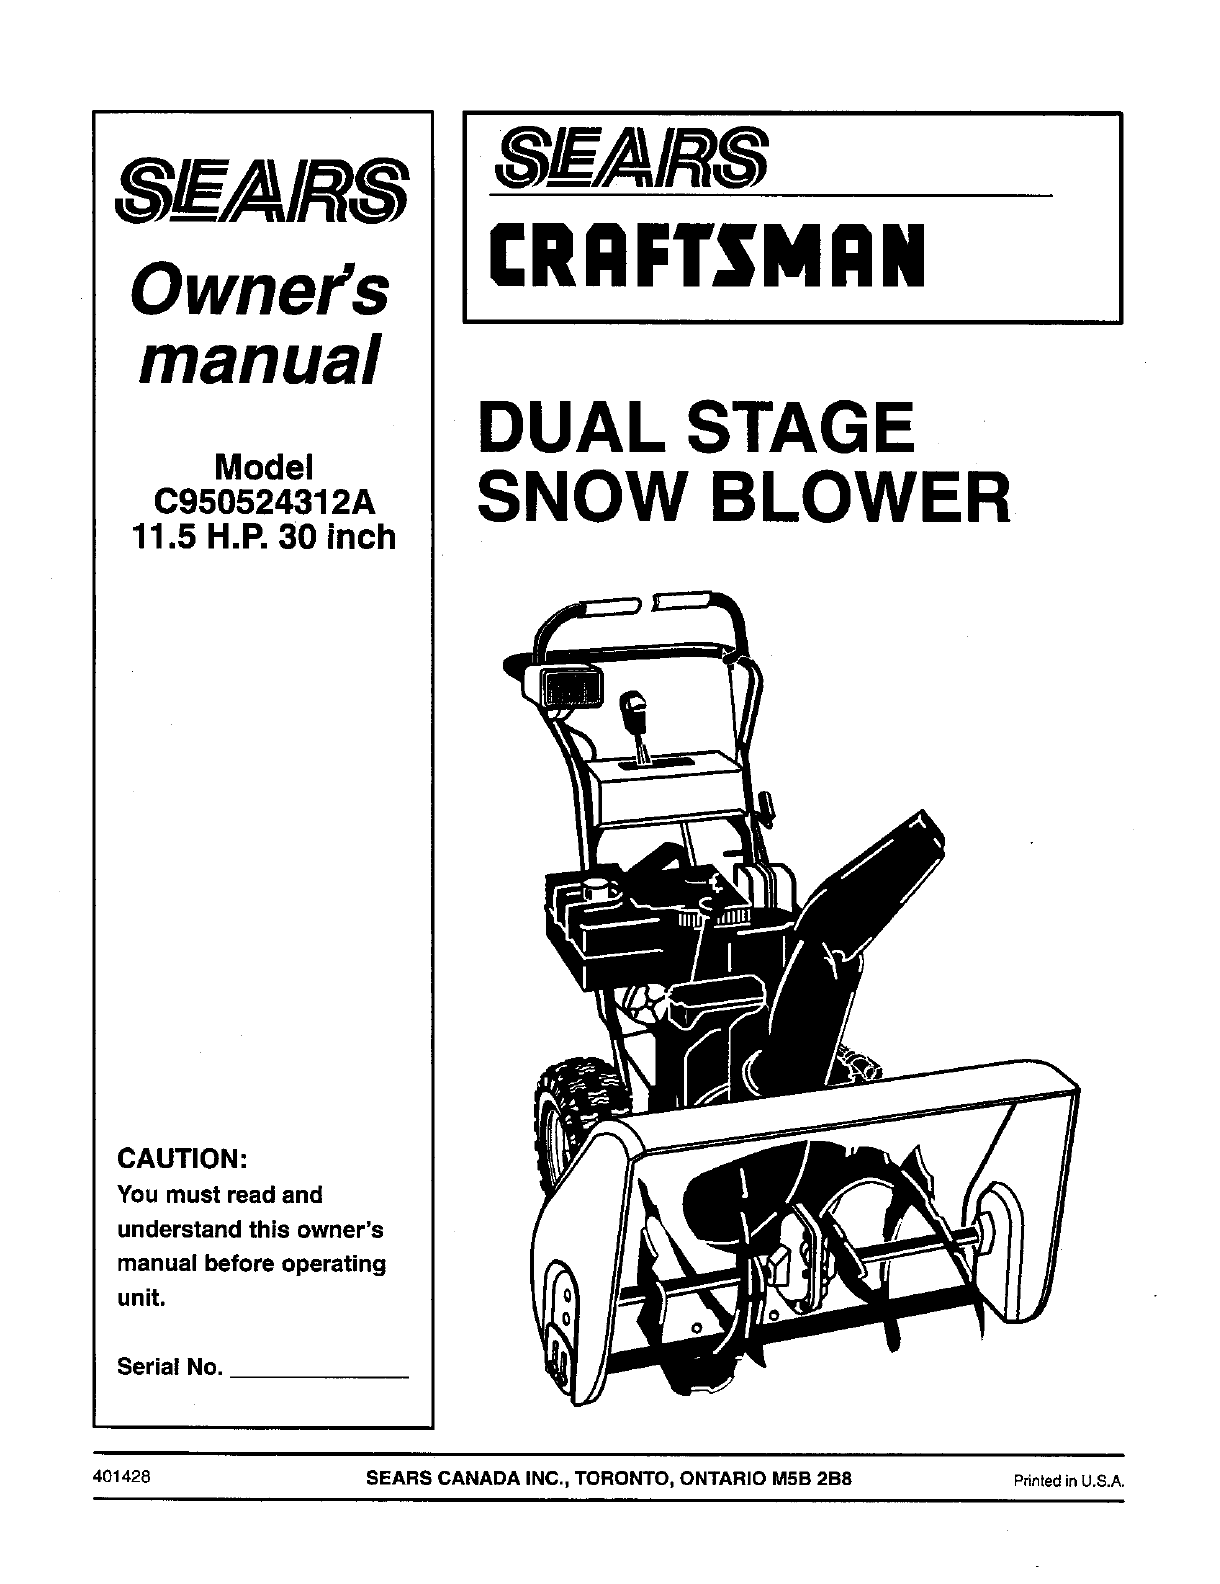 Craftsman C950524312a User Manual Dual Stage Snow Blower Manuals And Guides L0511284